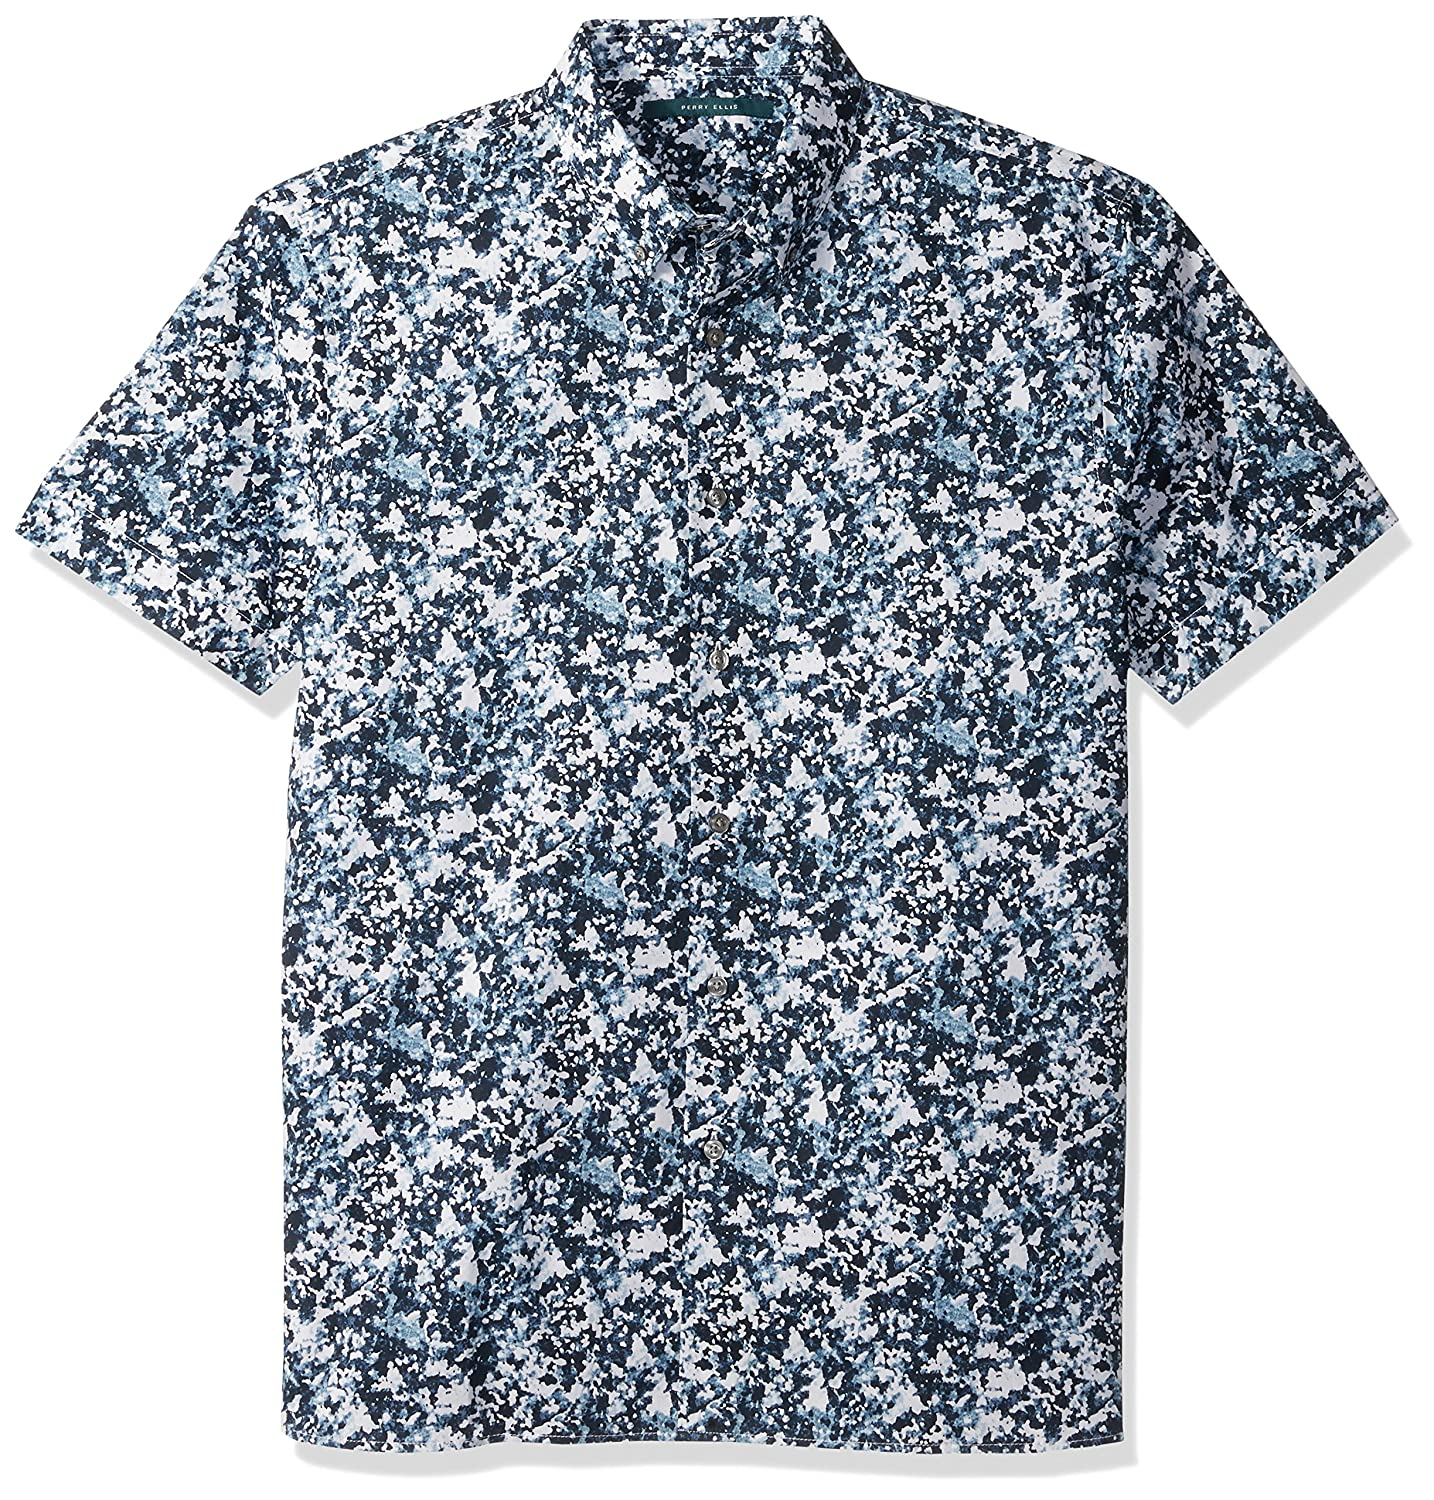 Perry Ellis Mens Short Sleeve Abstract Floral Print/ Shirt